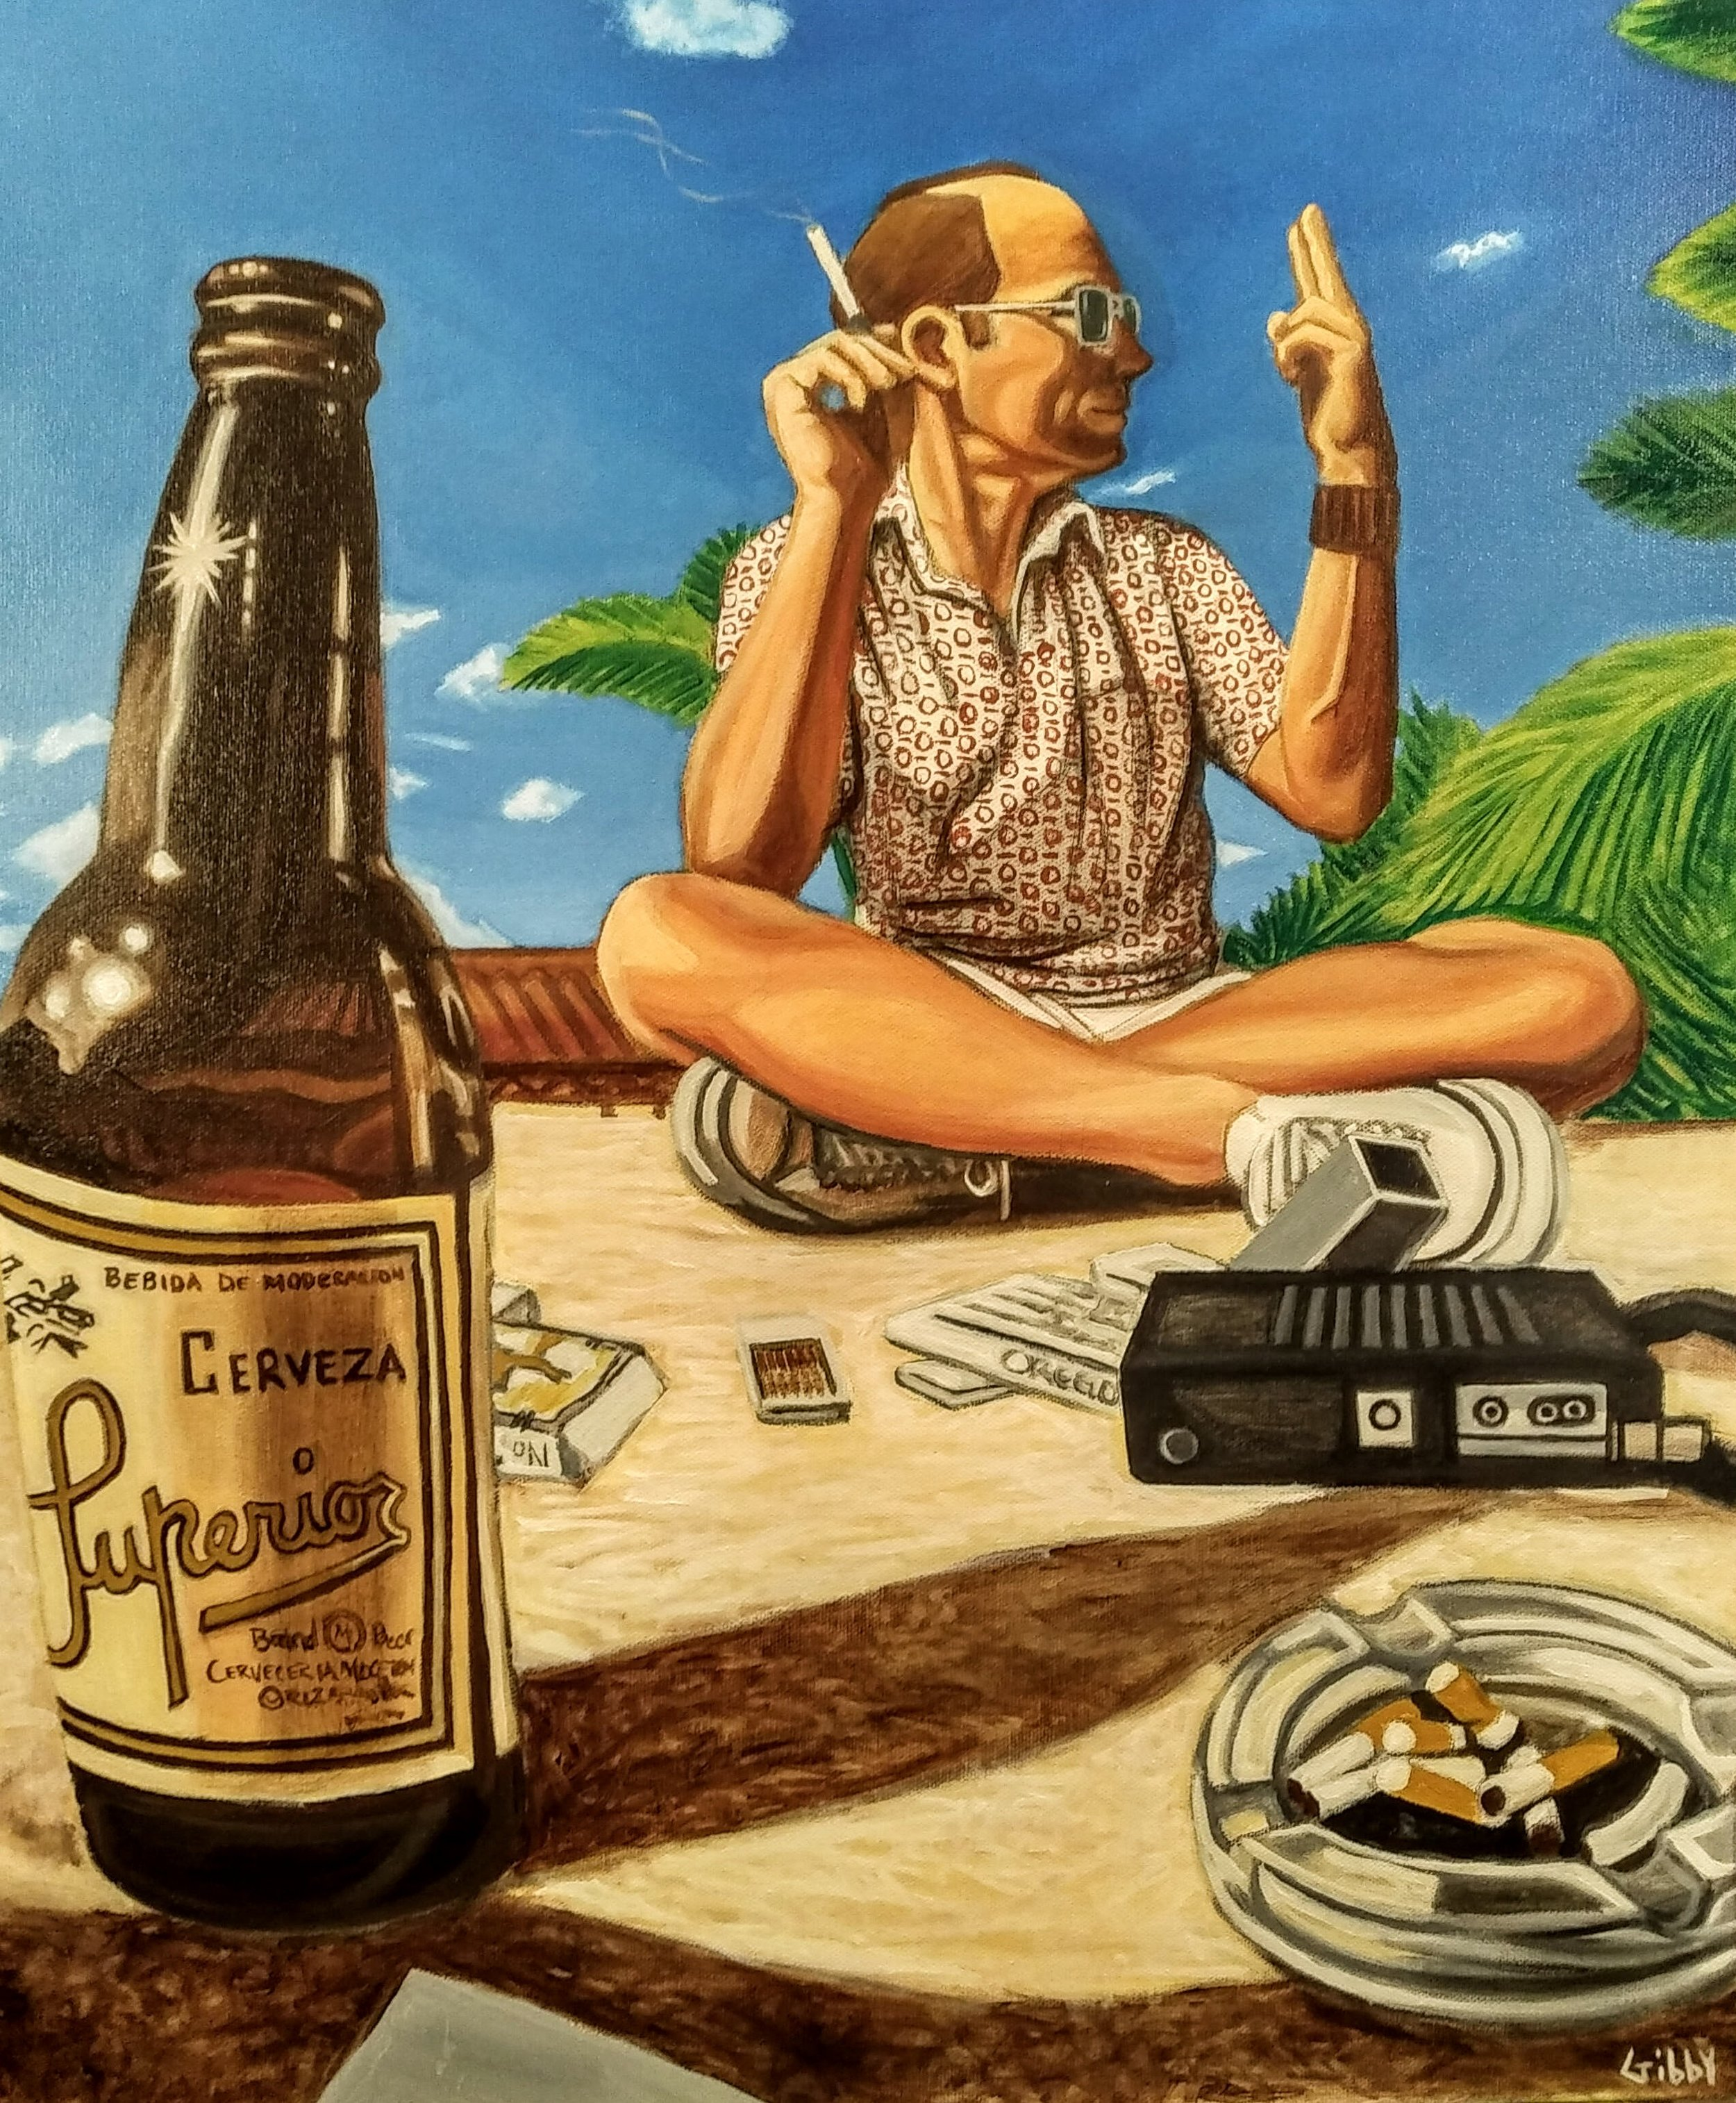 Portrait of Hunter S. Thompson